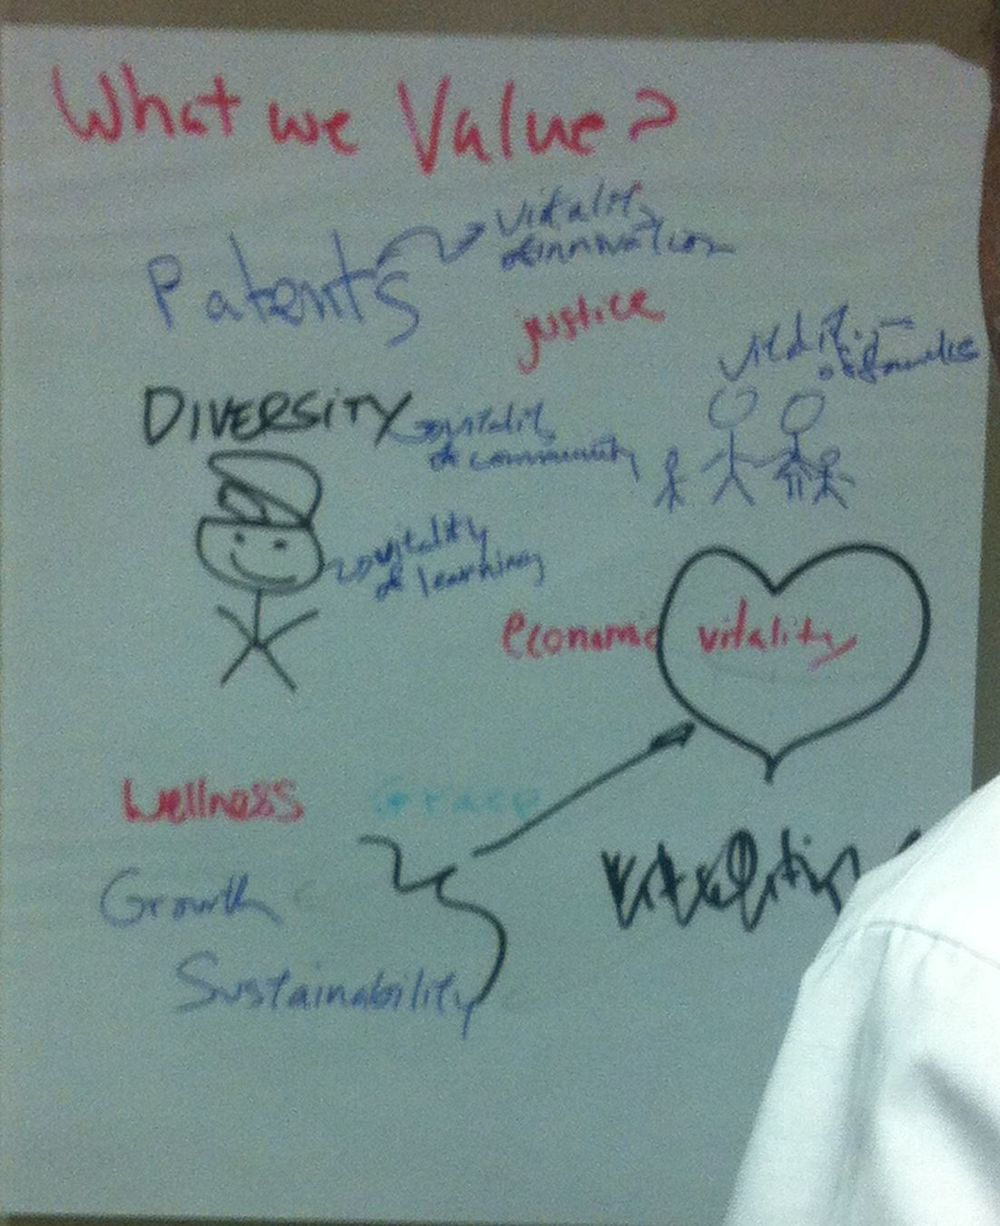 Strategic Planning Poster on Values